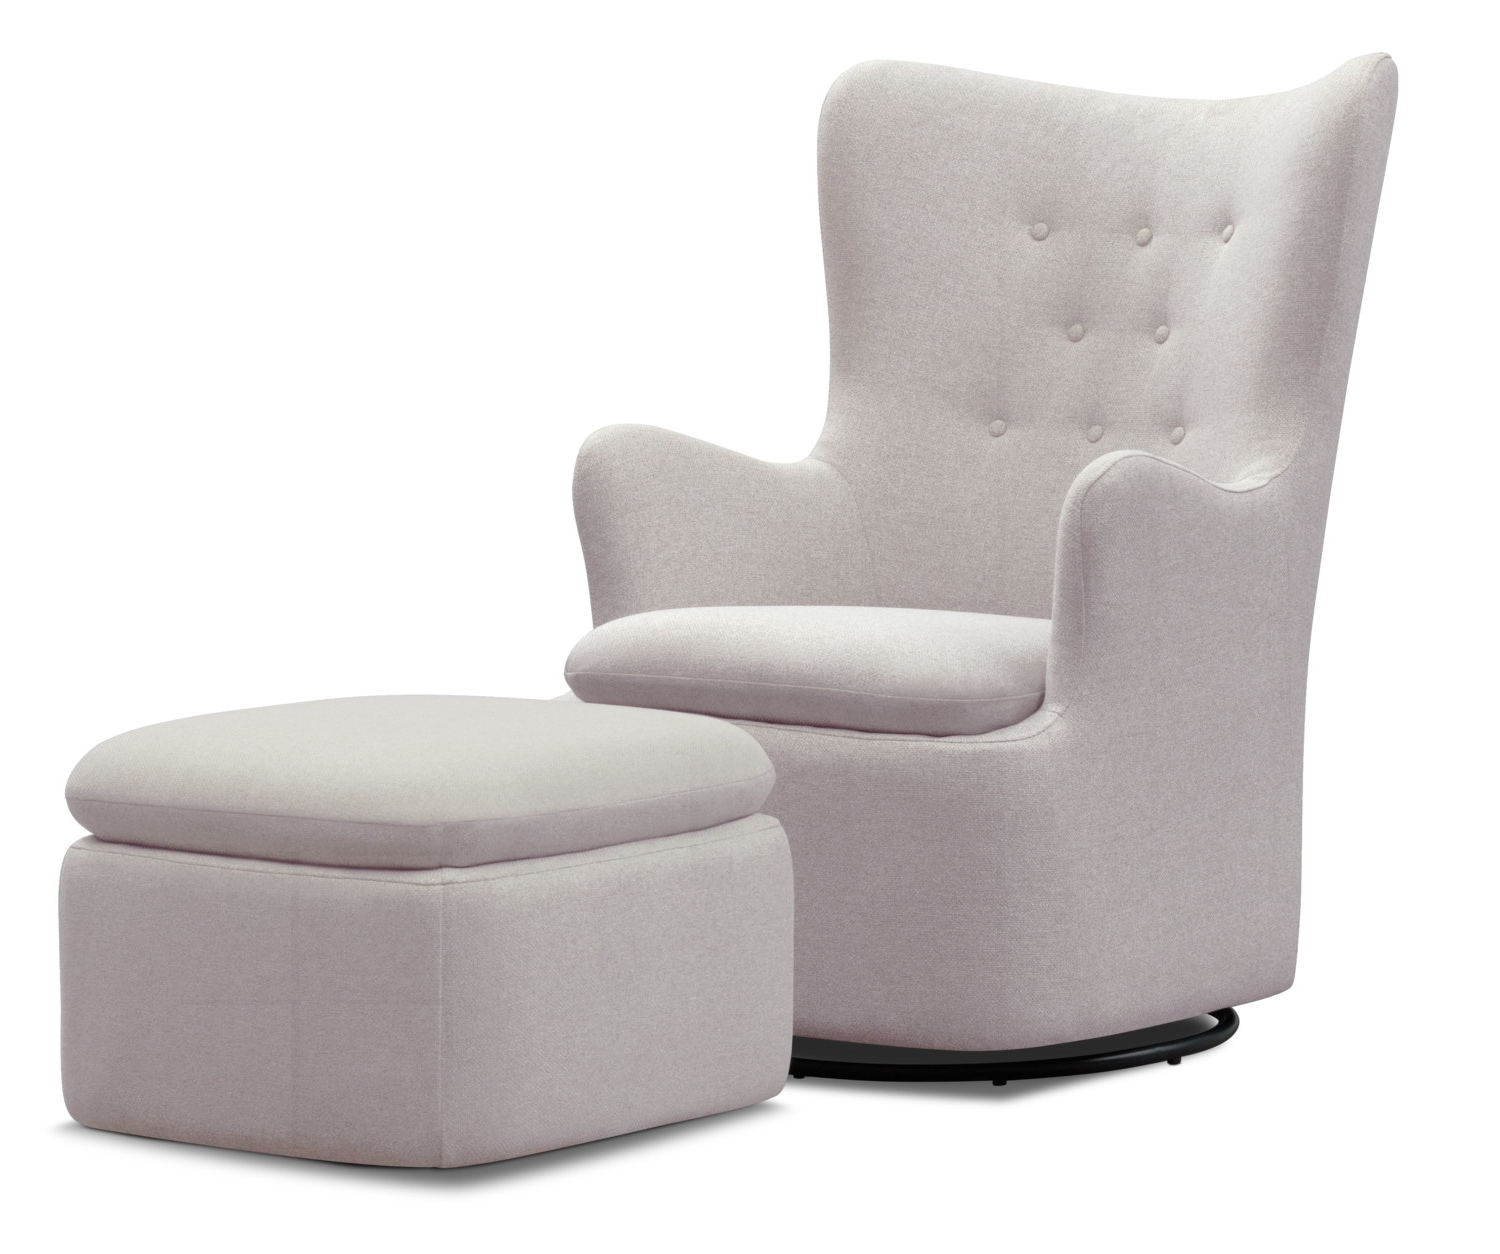 Loft Black Swivel Accent Chairs For Well Known Addie Swivel Chair And Ottoman Set – Gray (View 13 of 20)